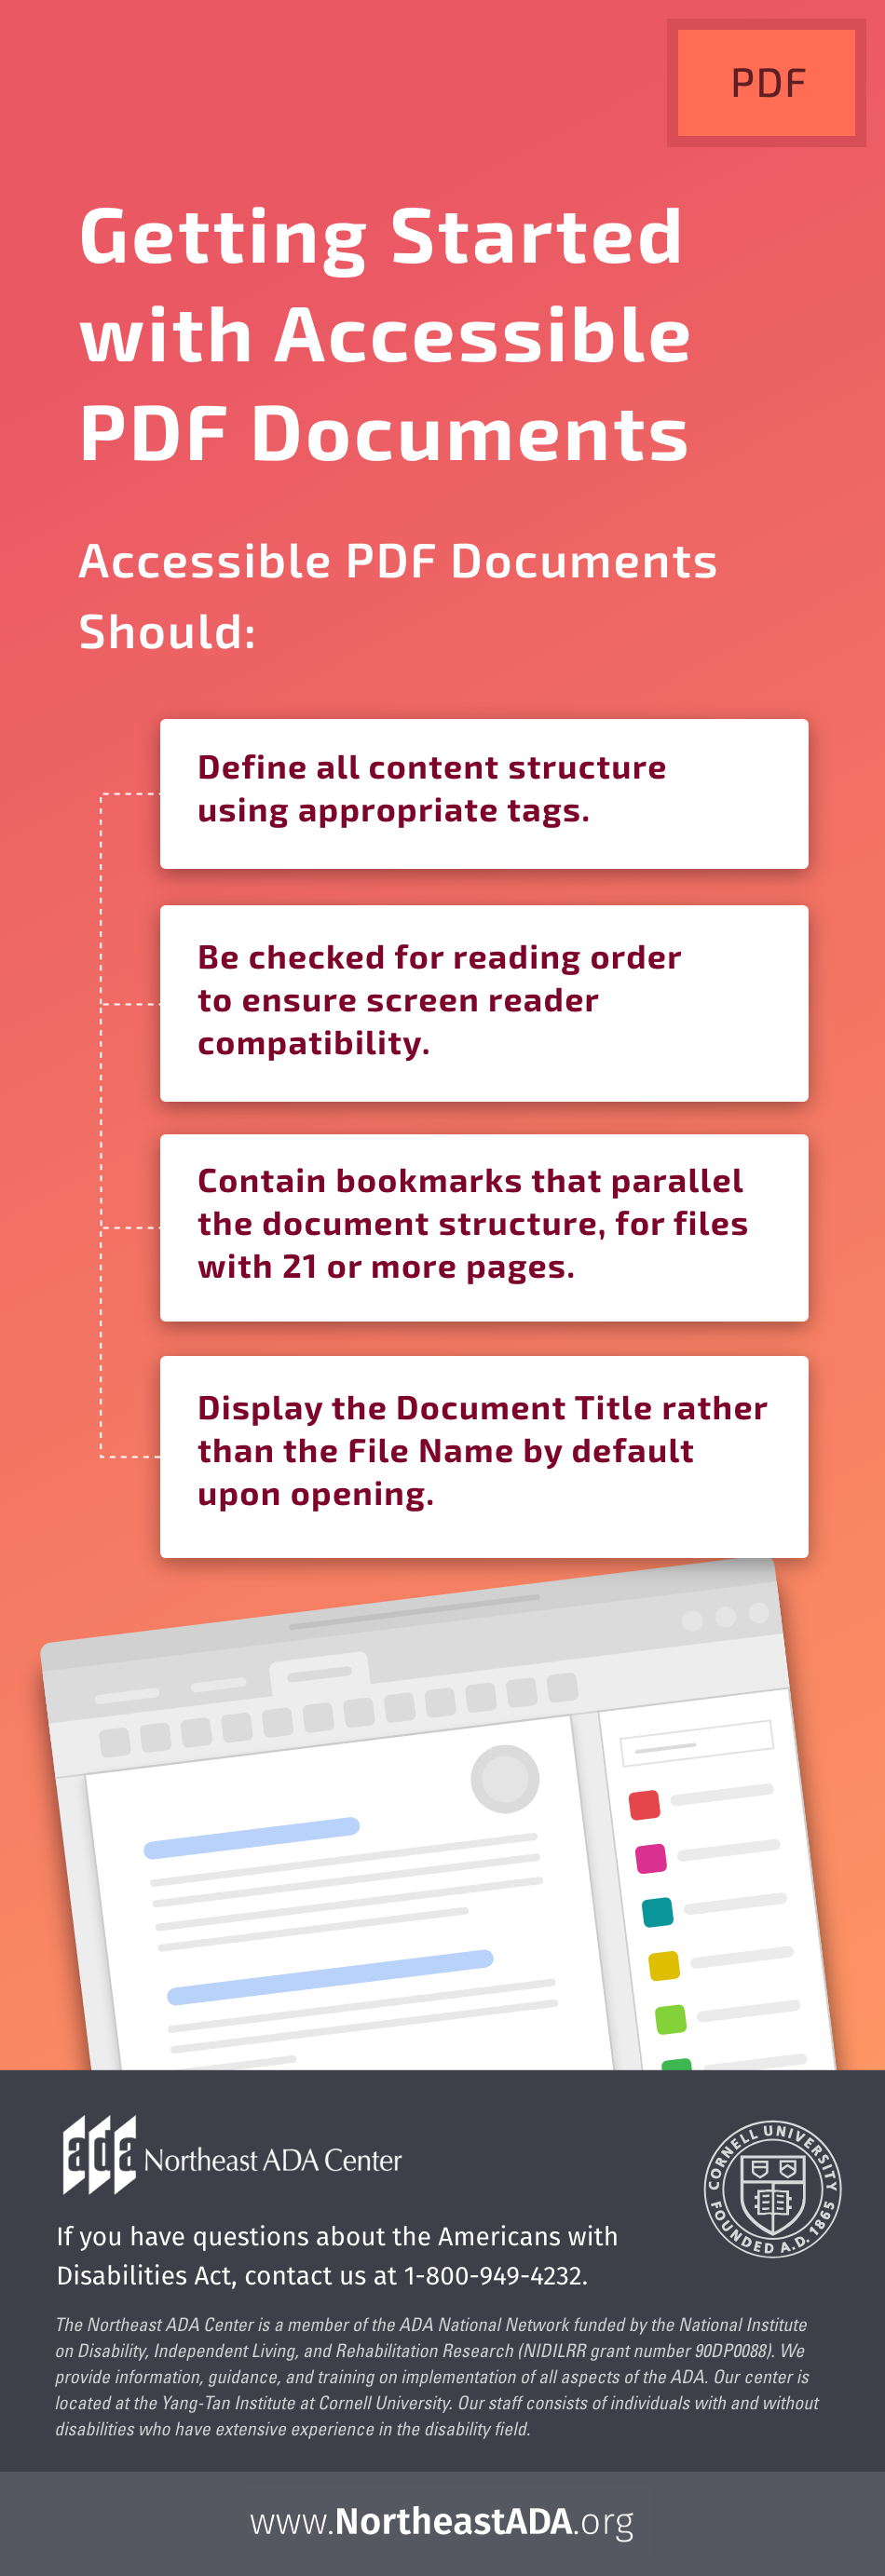 Infographic titled 'Getting Started with Accessible PDF Documents' featuring an image of Adobe Acrobat and text boxes with tips: